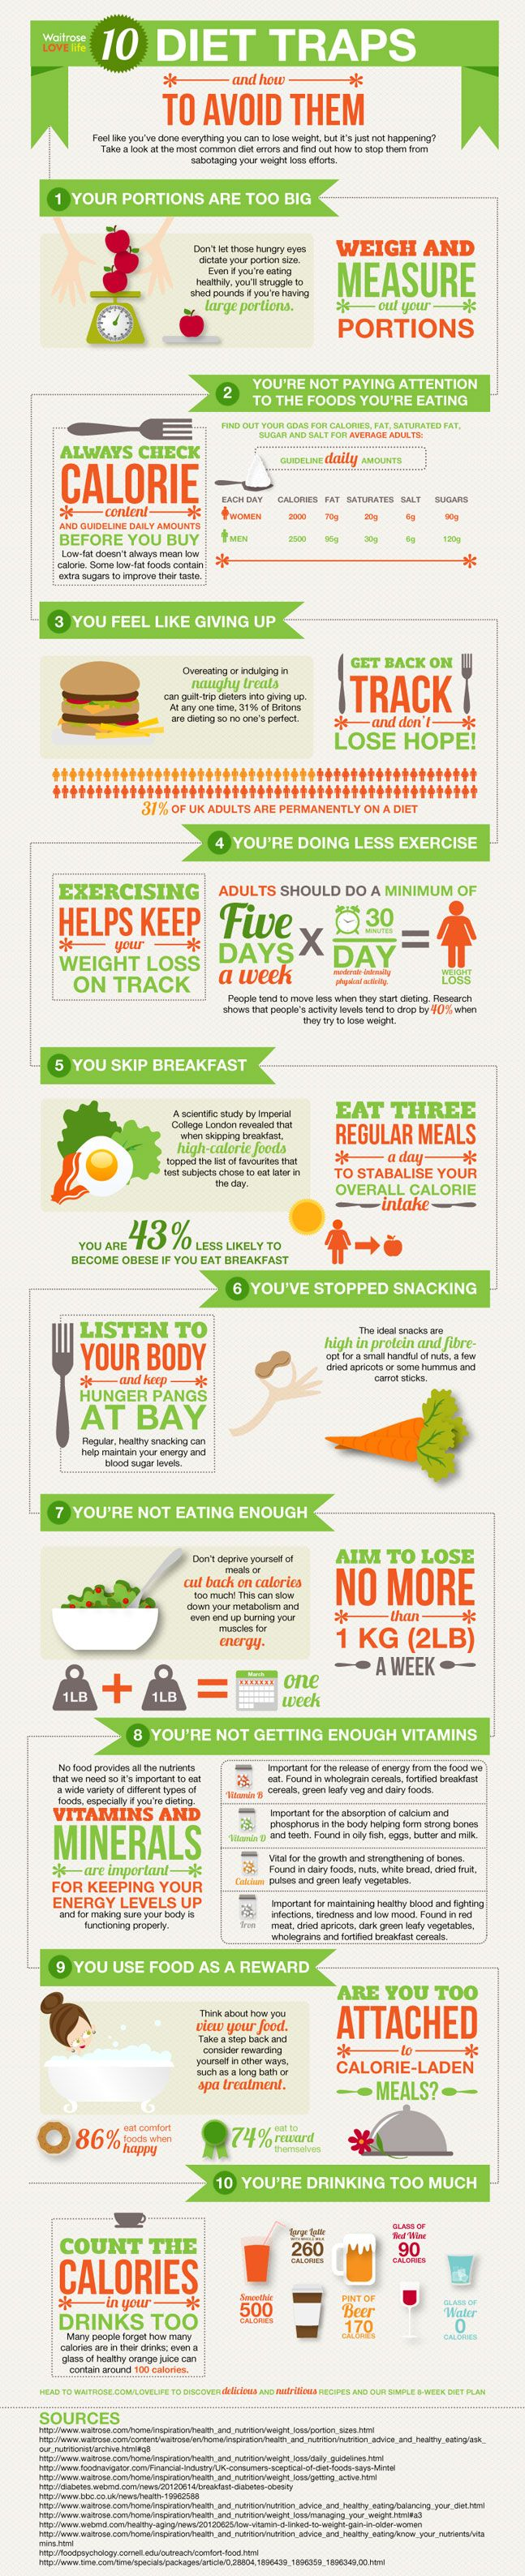 10 Common Diet Traps and How to Avoid Them - Did you know you're 43% less likely to become obese if you eat breakfast? Keeping fit and losing weight can be difficult, so make sure you're doing it right! Avoid these 10 most common dieting traps along with stats to help you lose those extra pounds. #waitrose #weightloss #diet